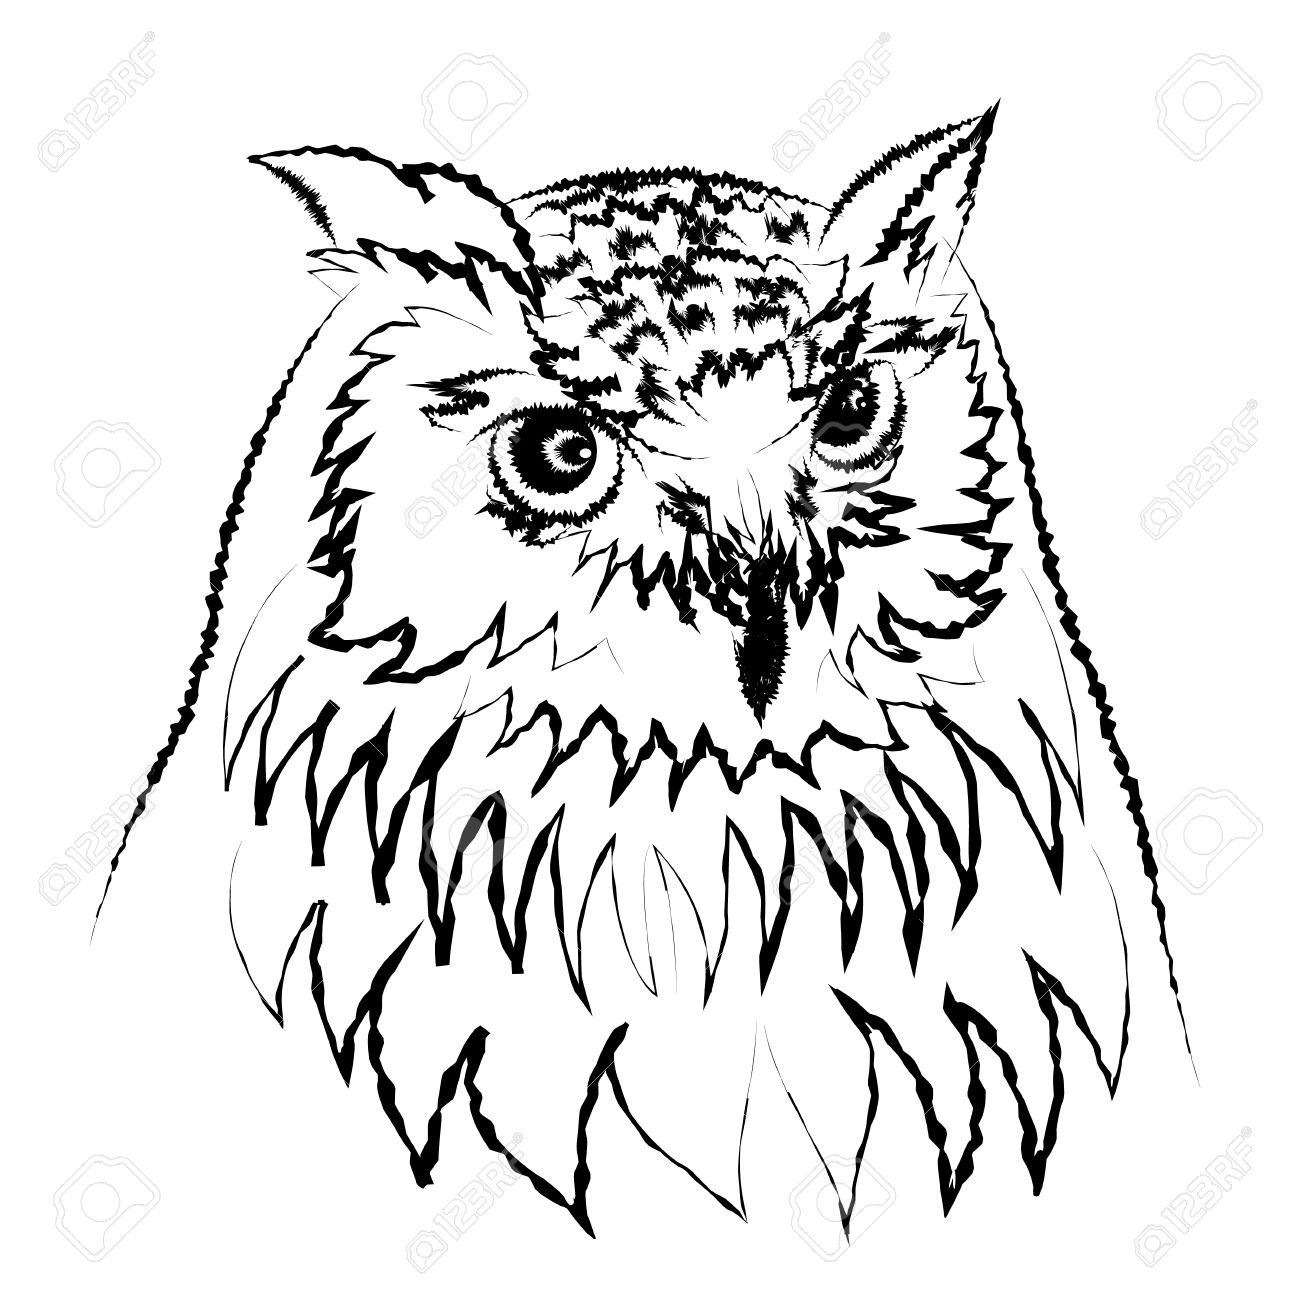 Line Art Of Siberian Eagle Owl, Or Bubo Bubo Sibiricus Vector.